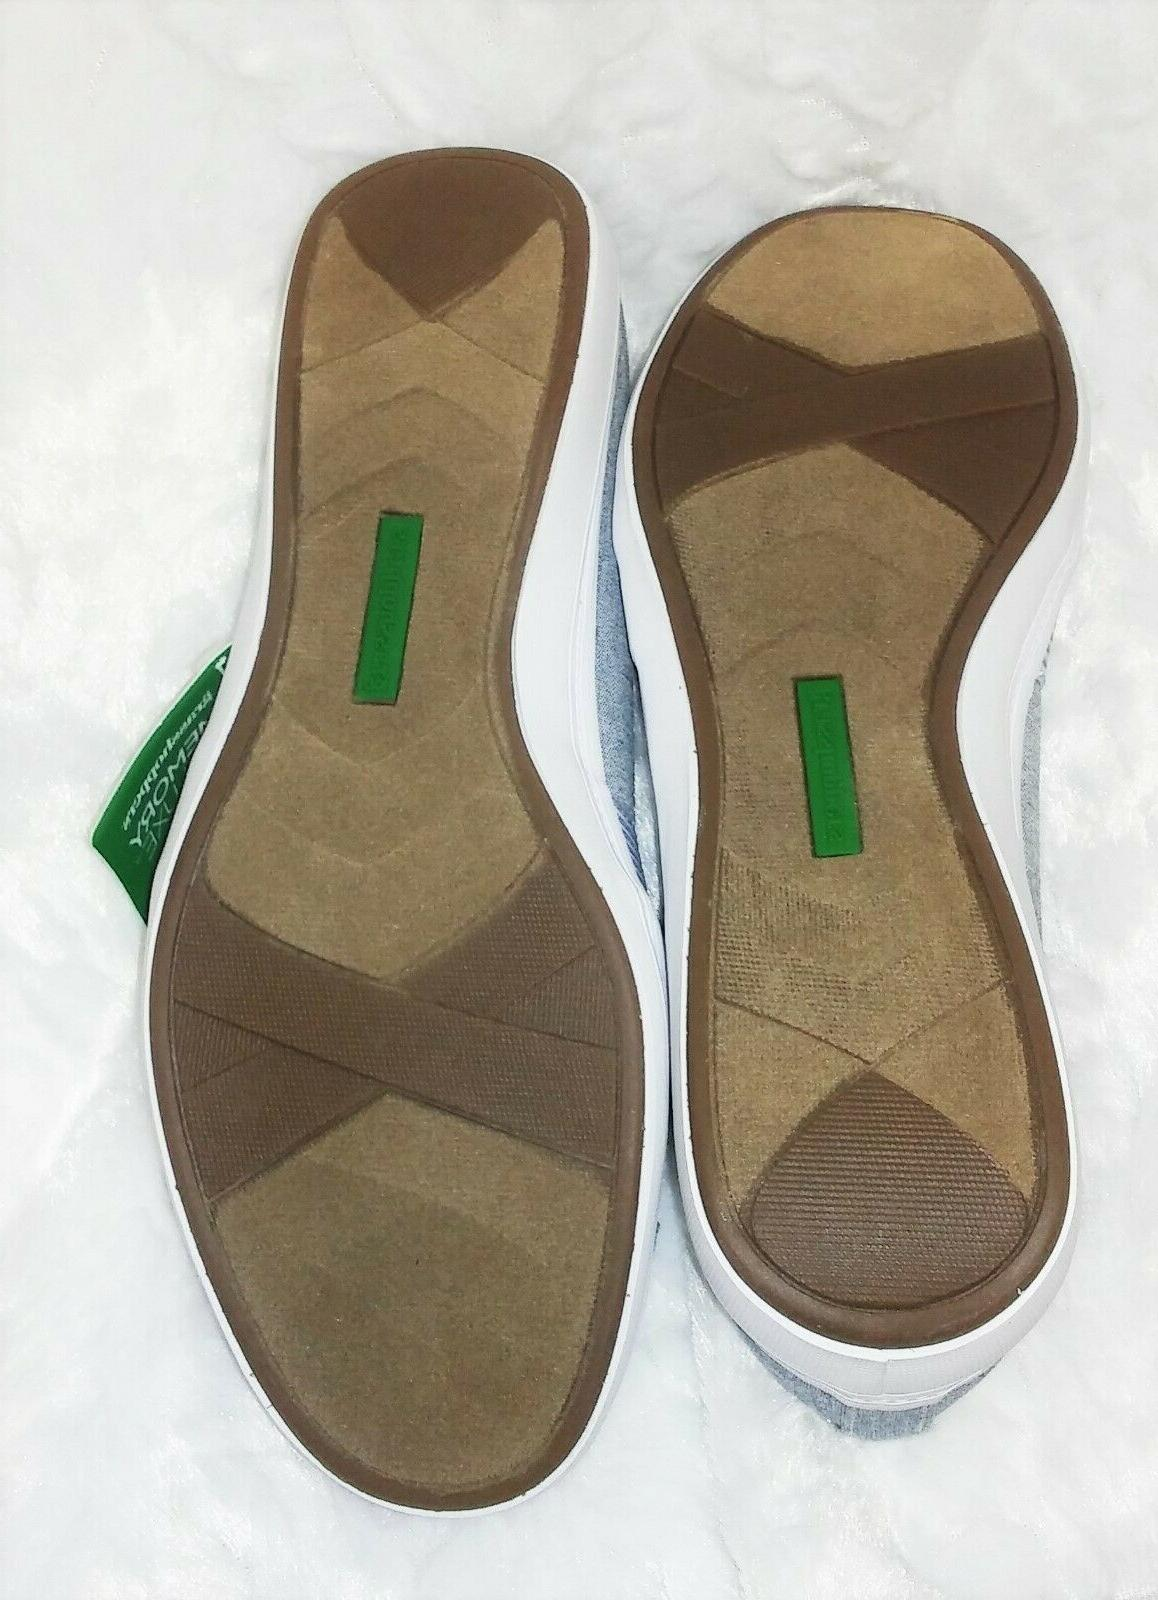 Grasshoppers Keds Loafers Shoes Size NIB